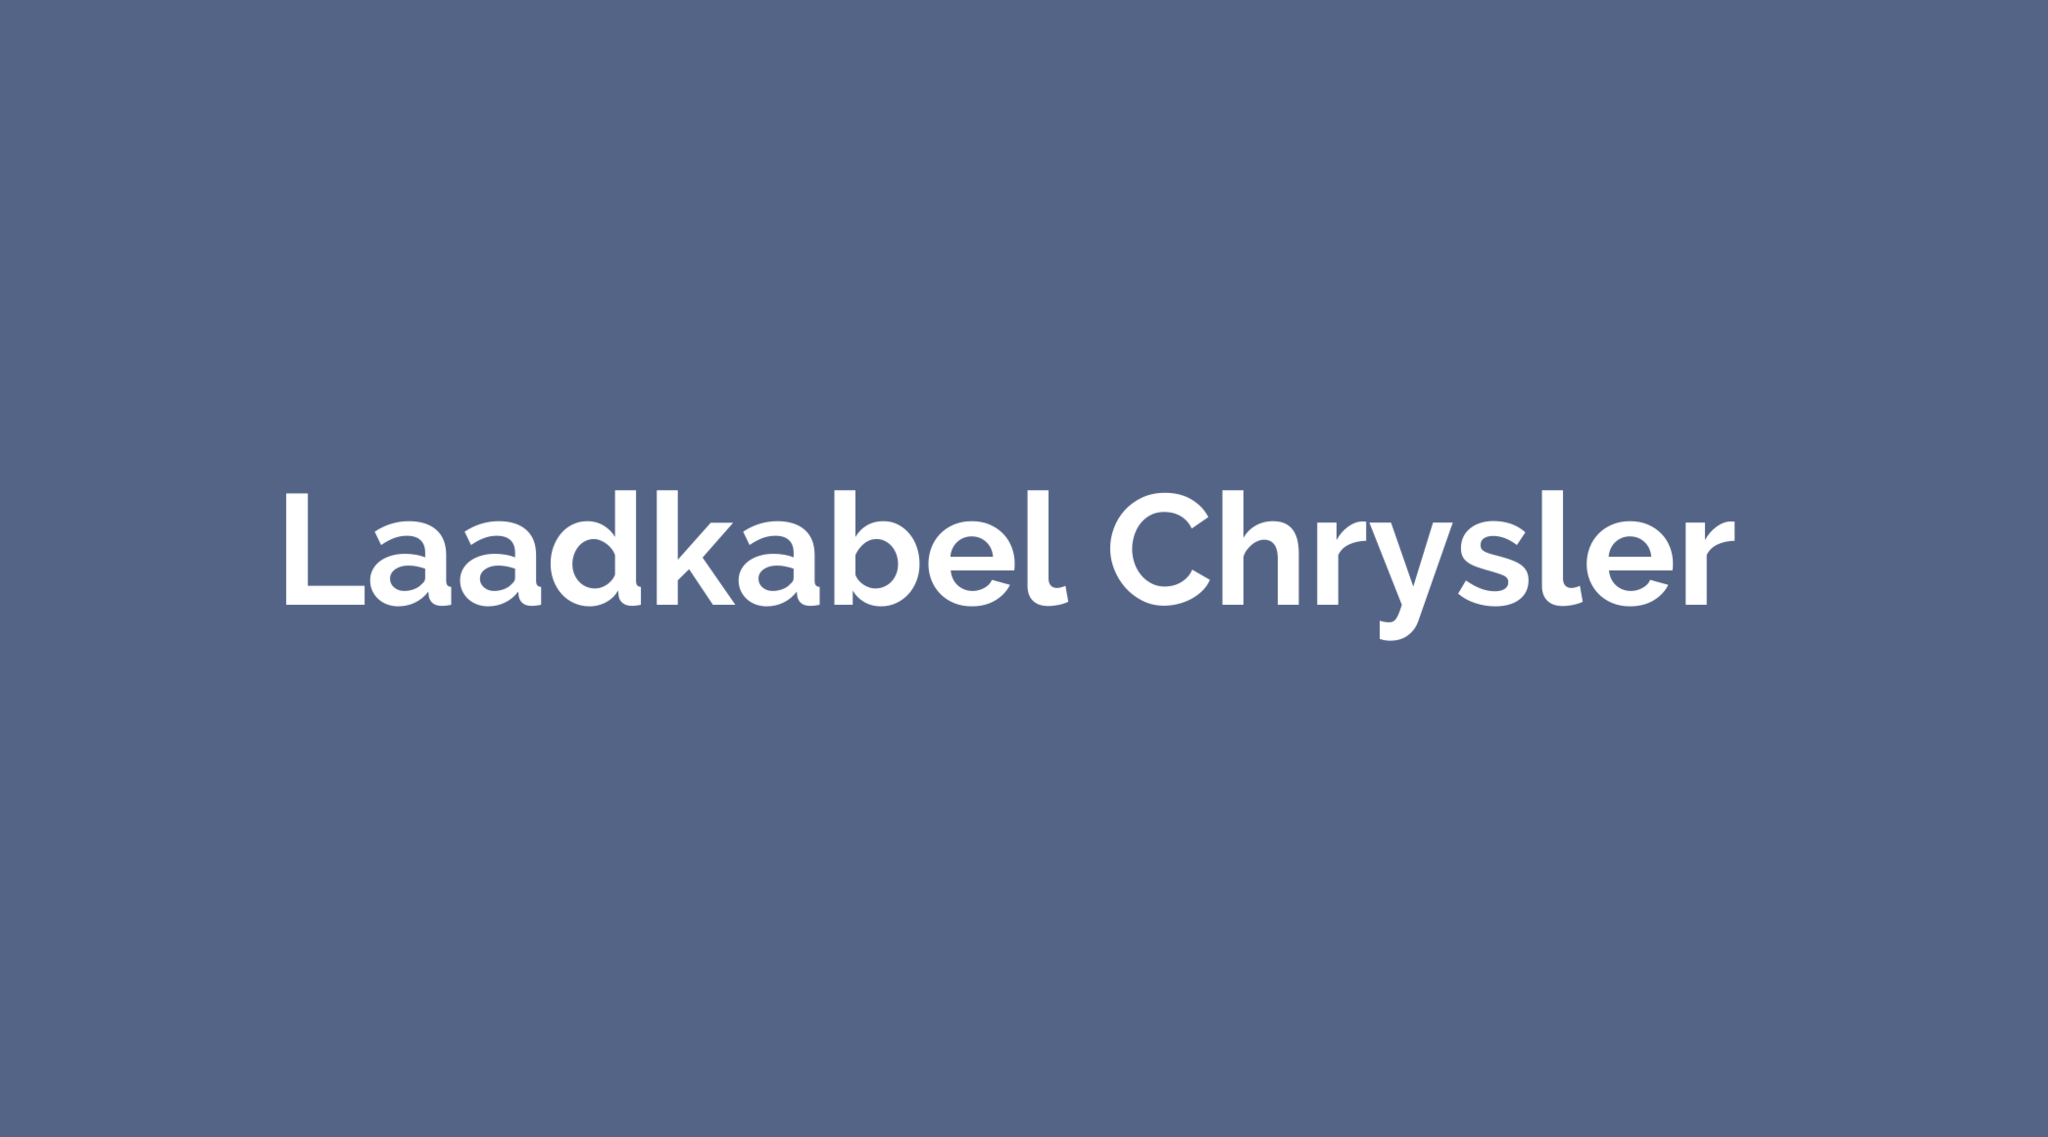 Laadkabel Chrysler